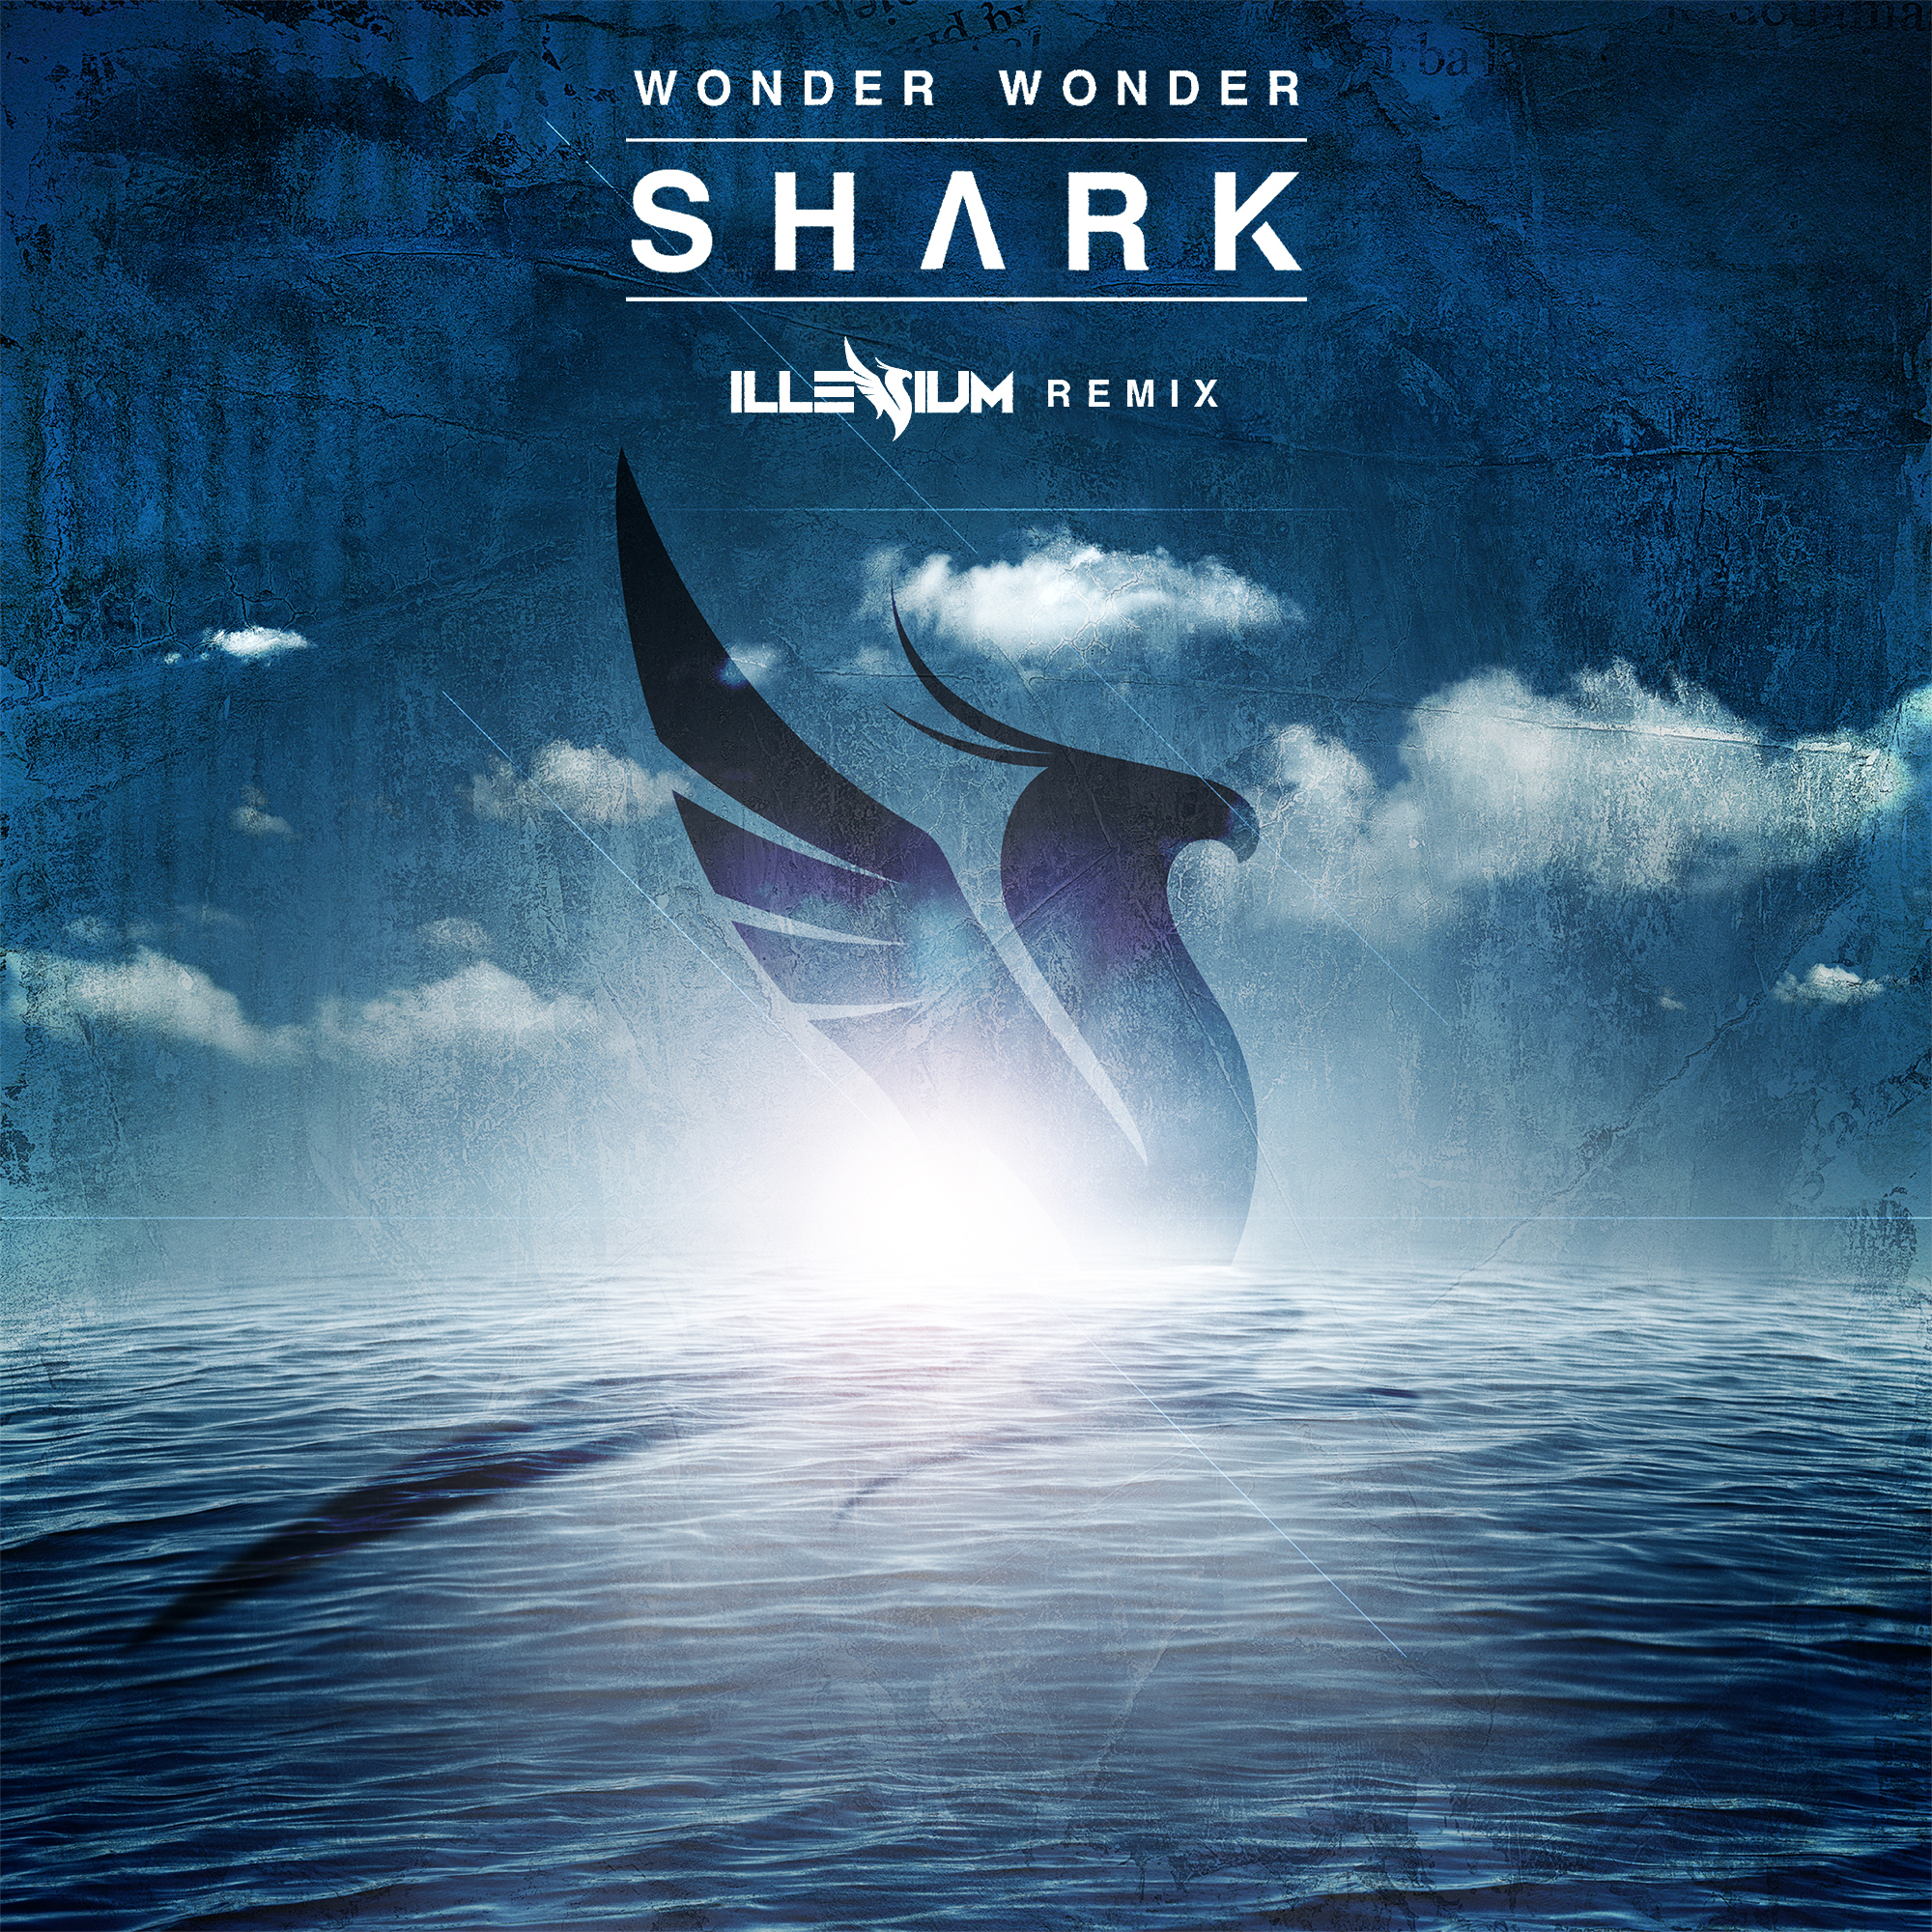 Free Fall Wallpaper Downloads Wonder Wonder Shark Illenium Remix Free Download